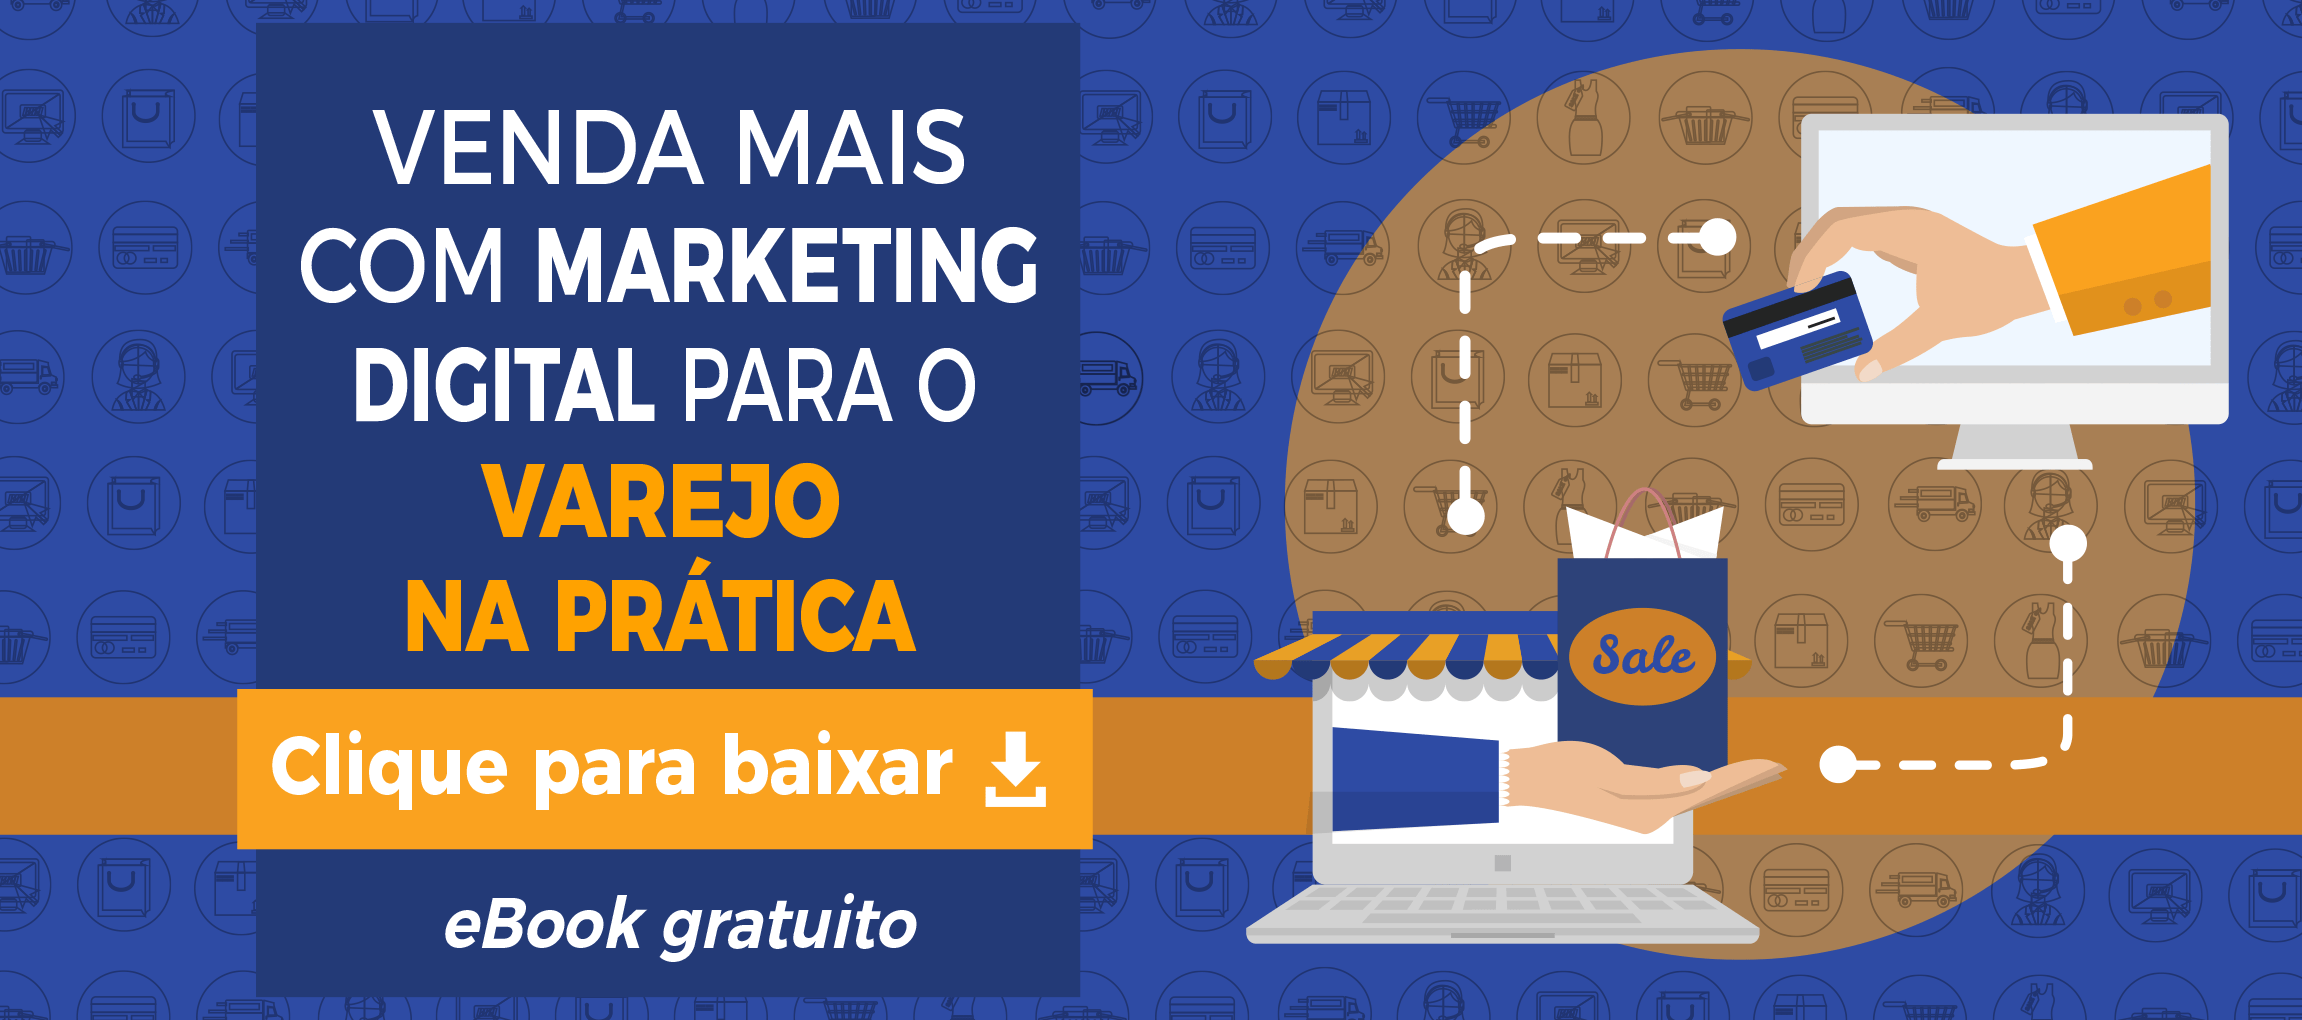 Como fazer marketing no varejo